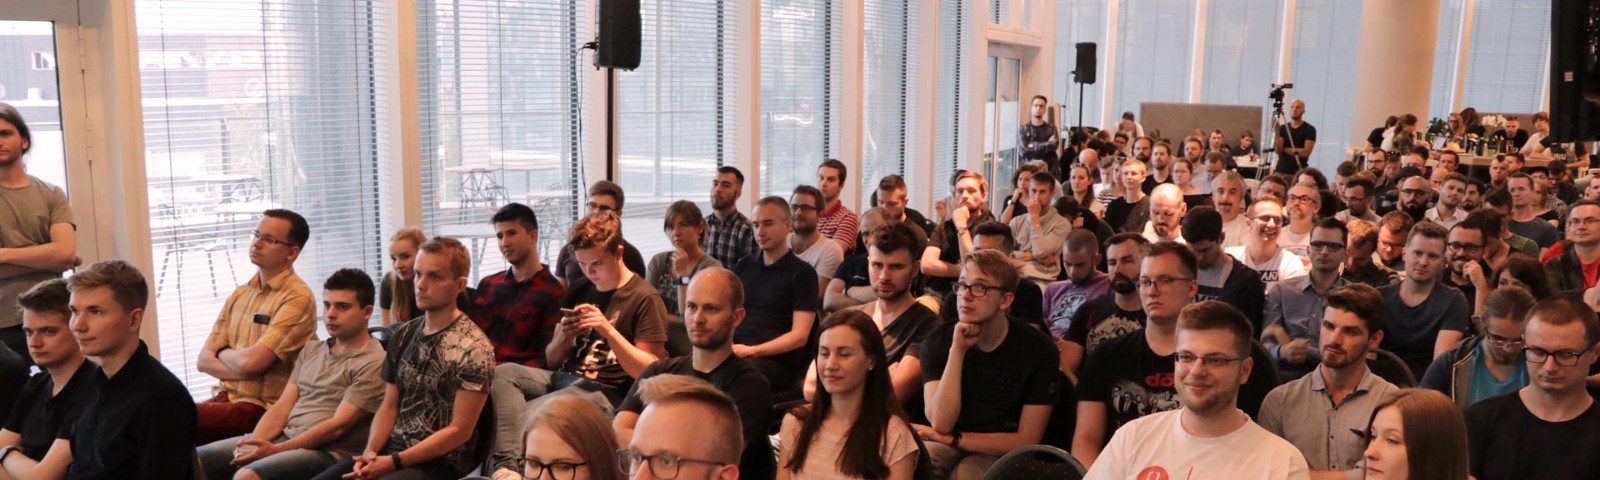 Photo from WarsawJS Meetup presents a crowded space at Warsaw Spire